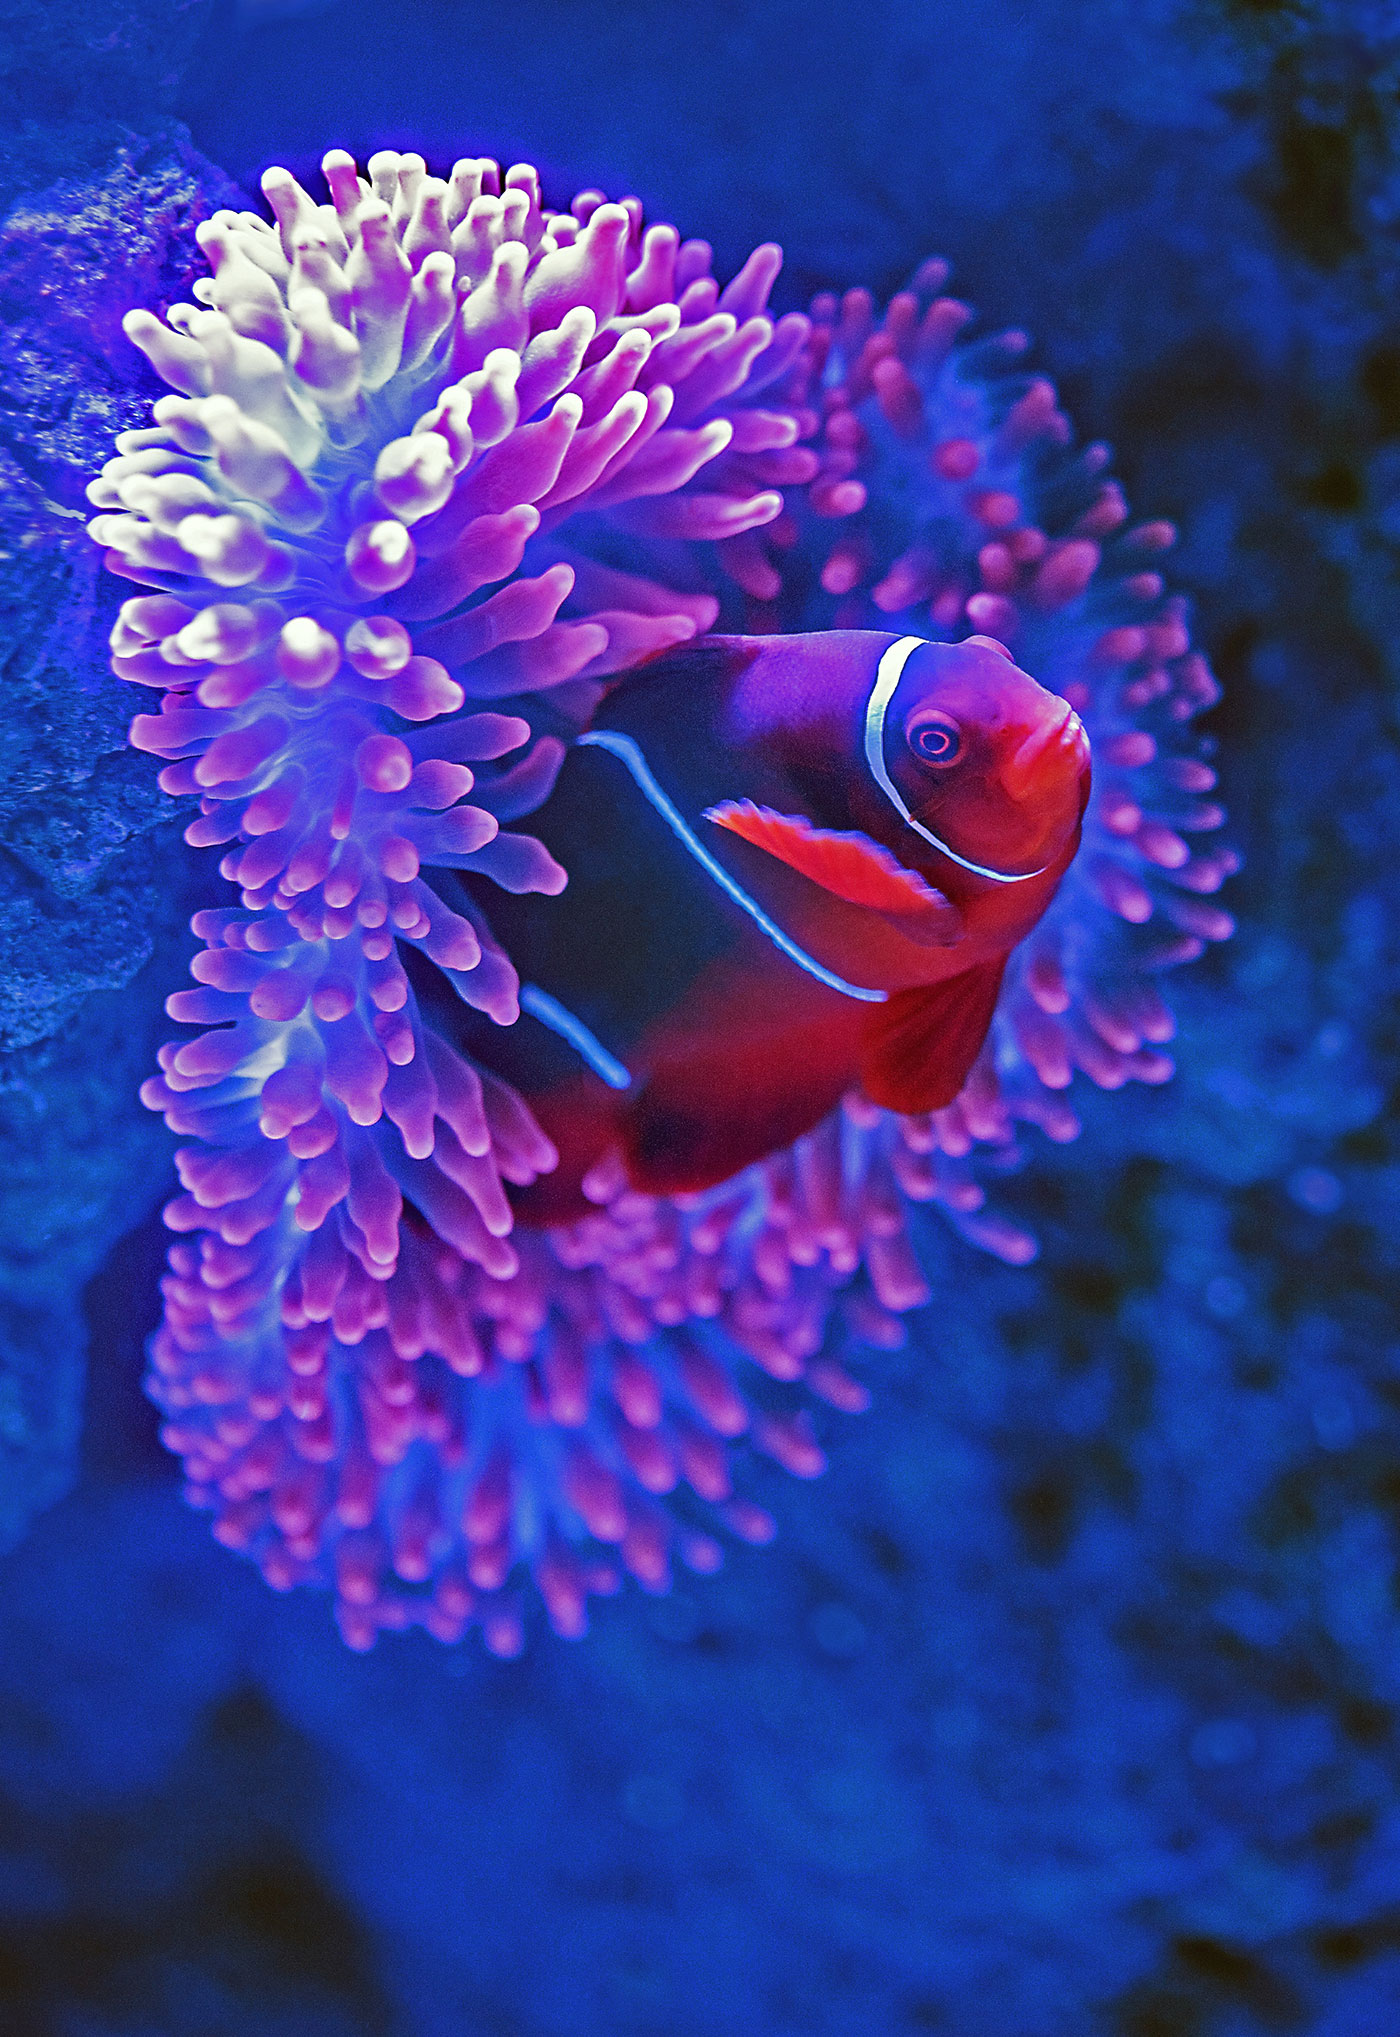 clownfish poking his head out of a sea anemone